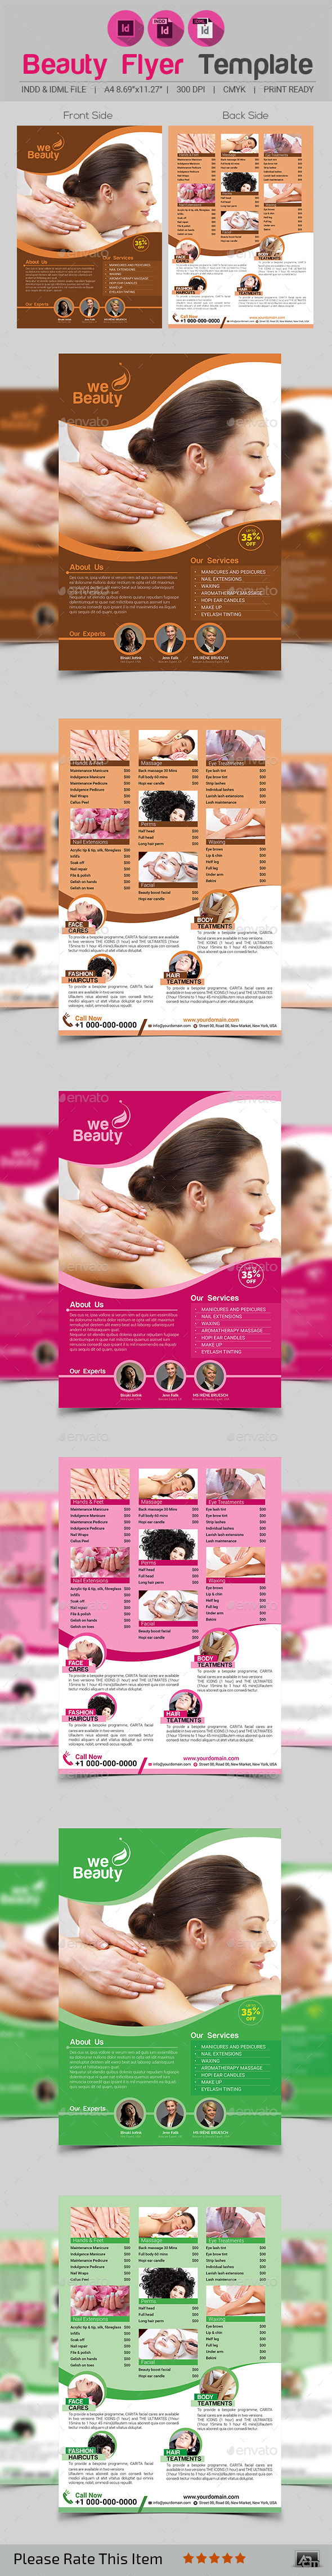 GraphicRiver Beauty Flyer Template 11908831